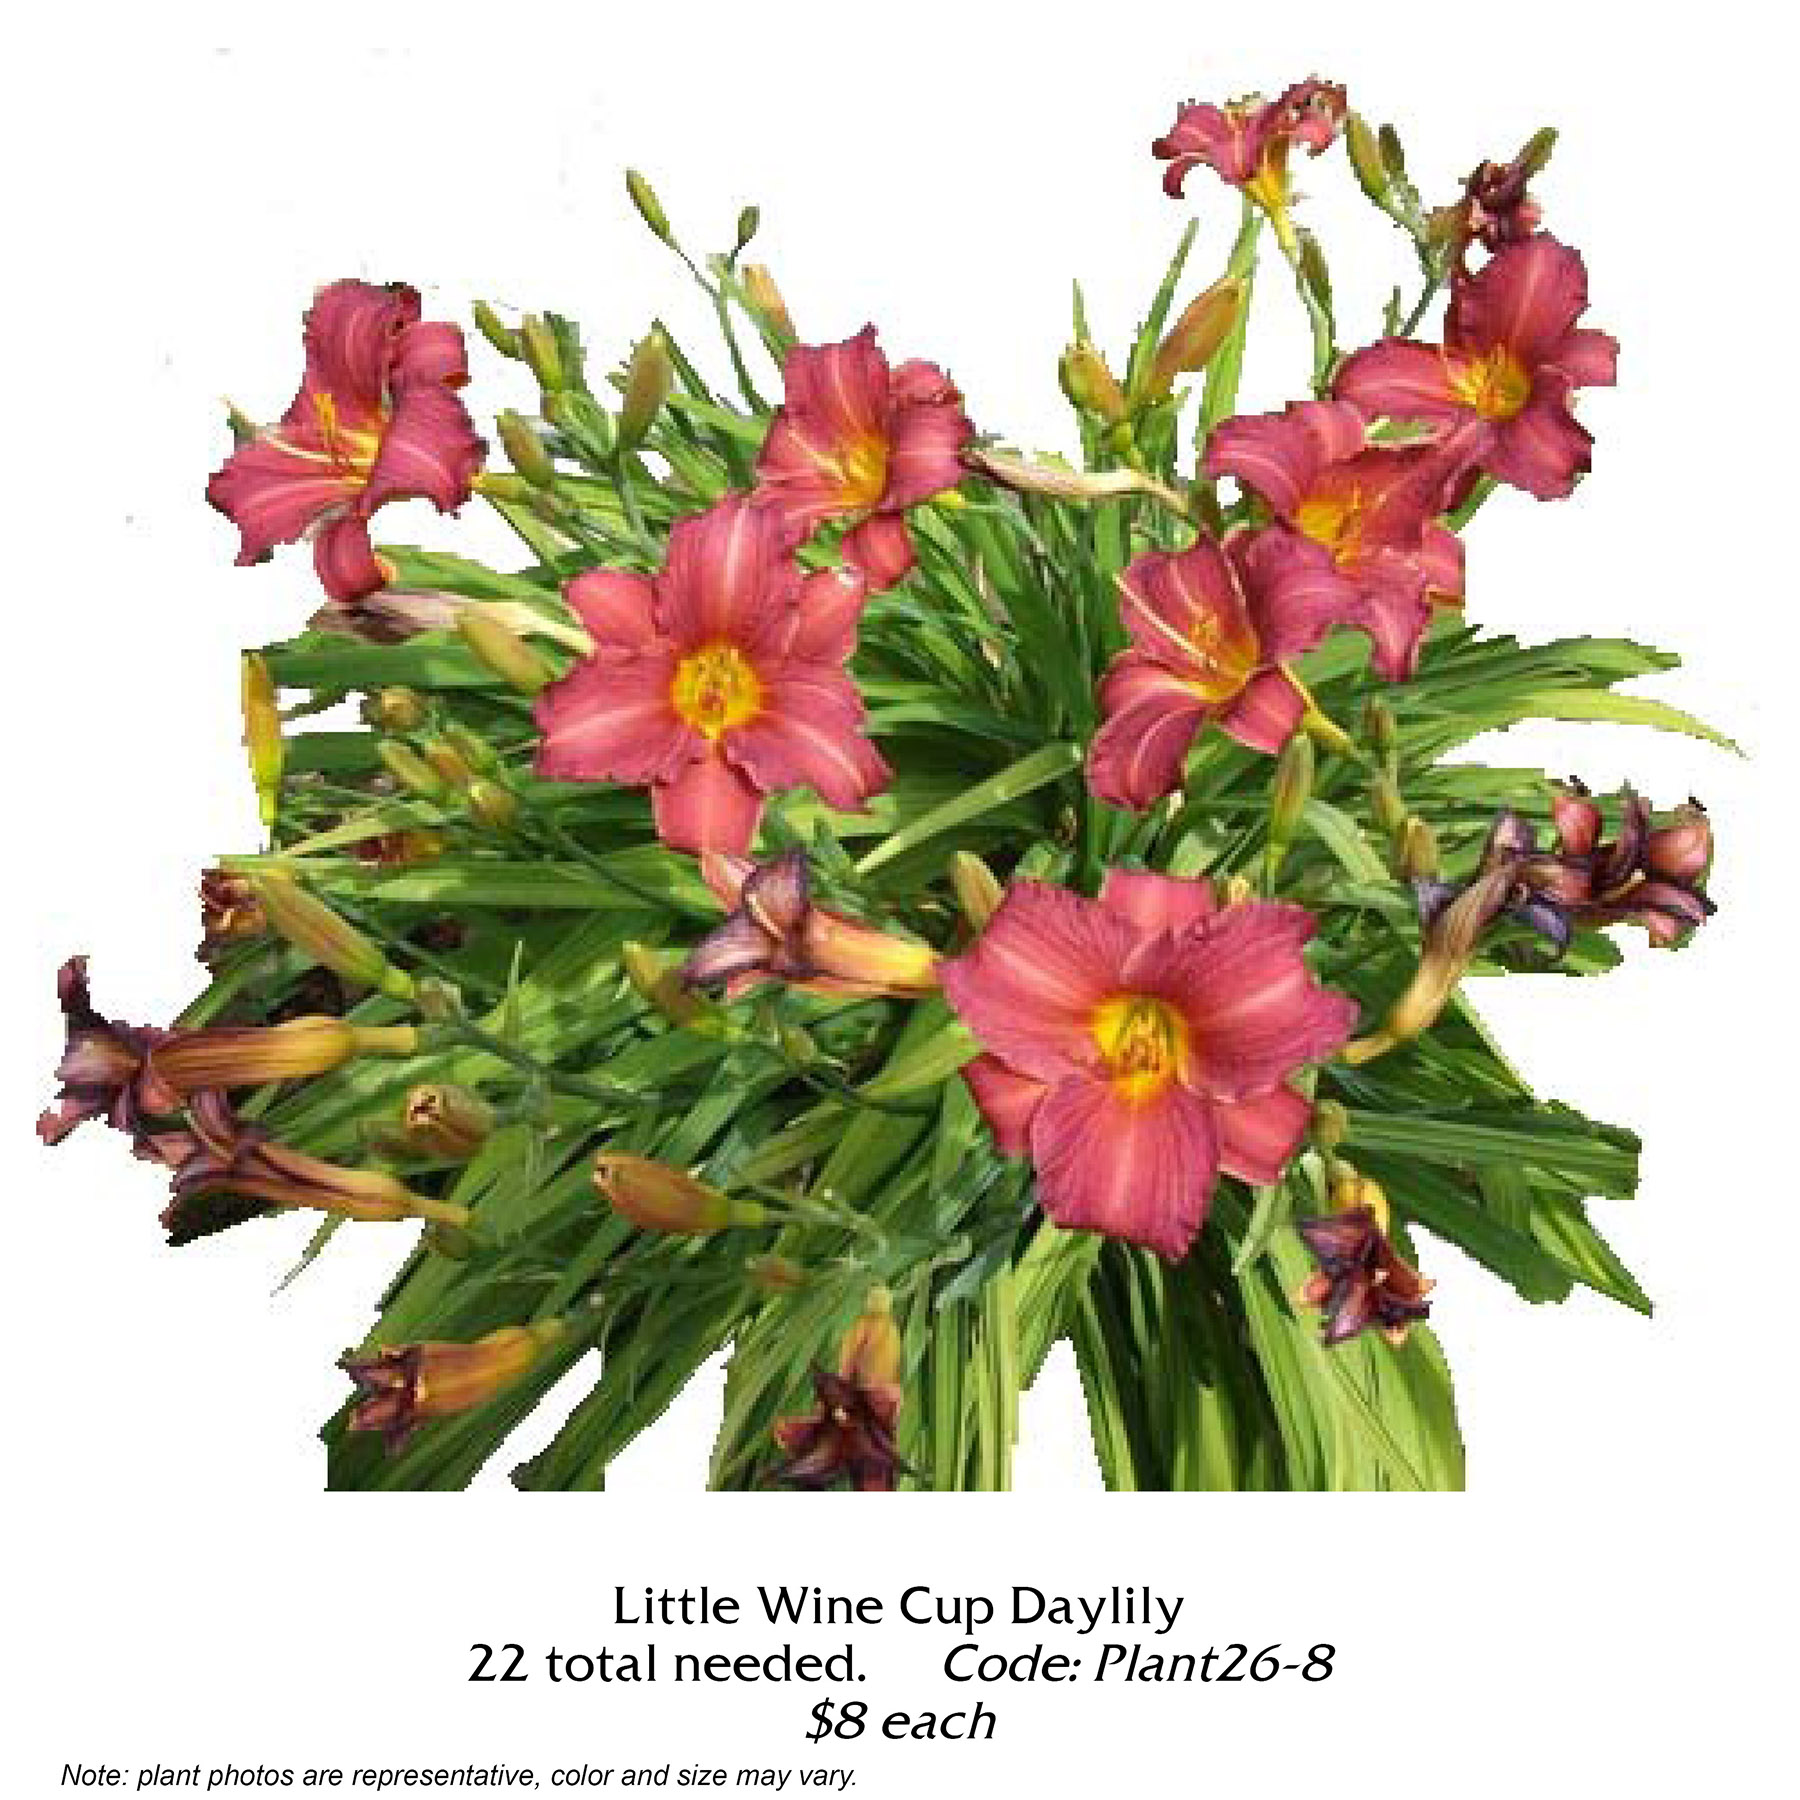 Little Wine Cup Daylily.jpg